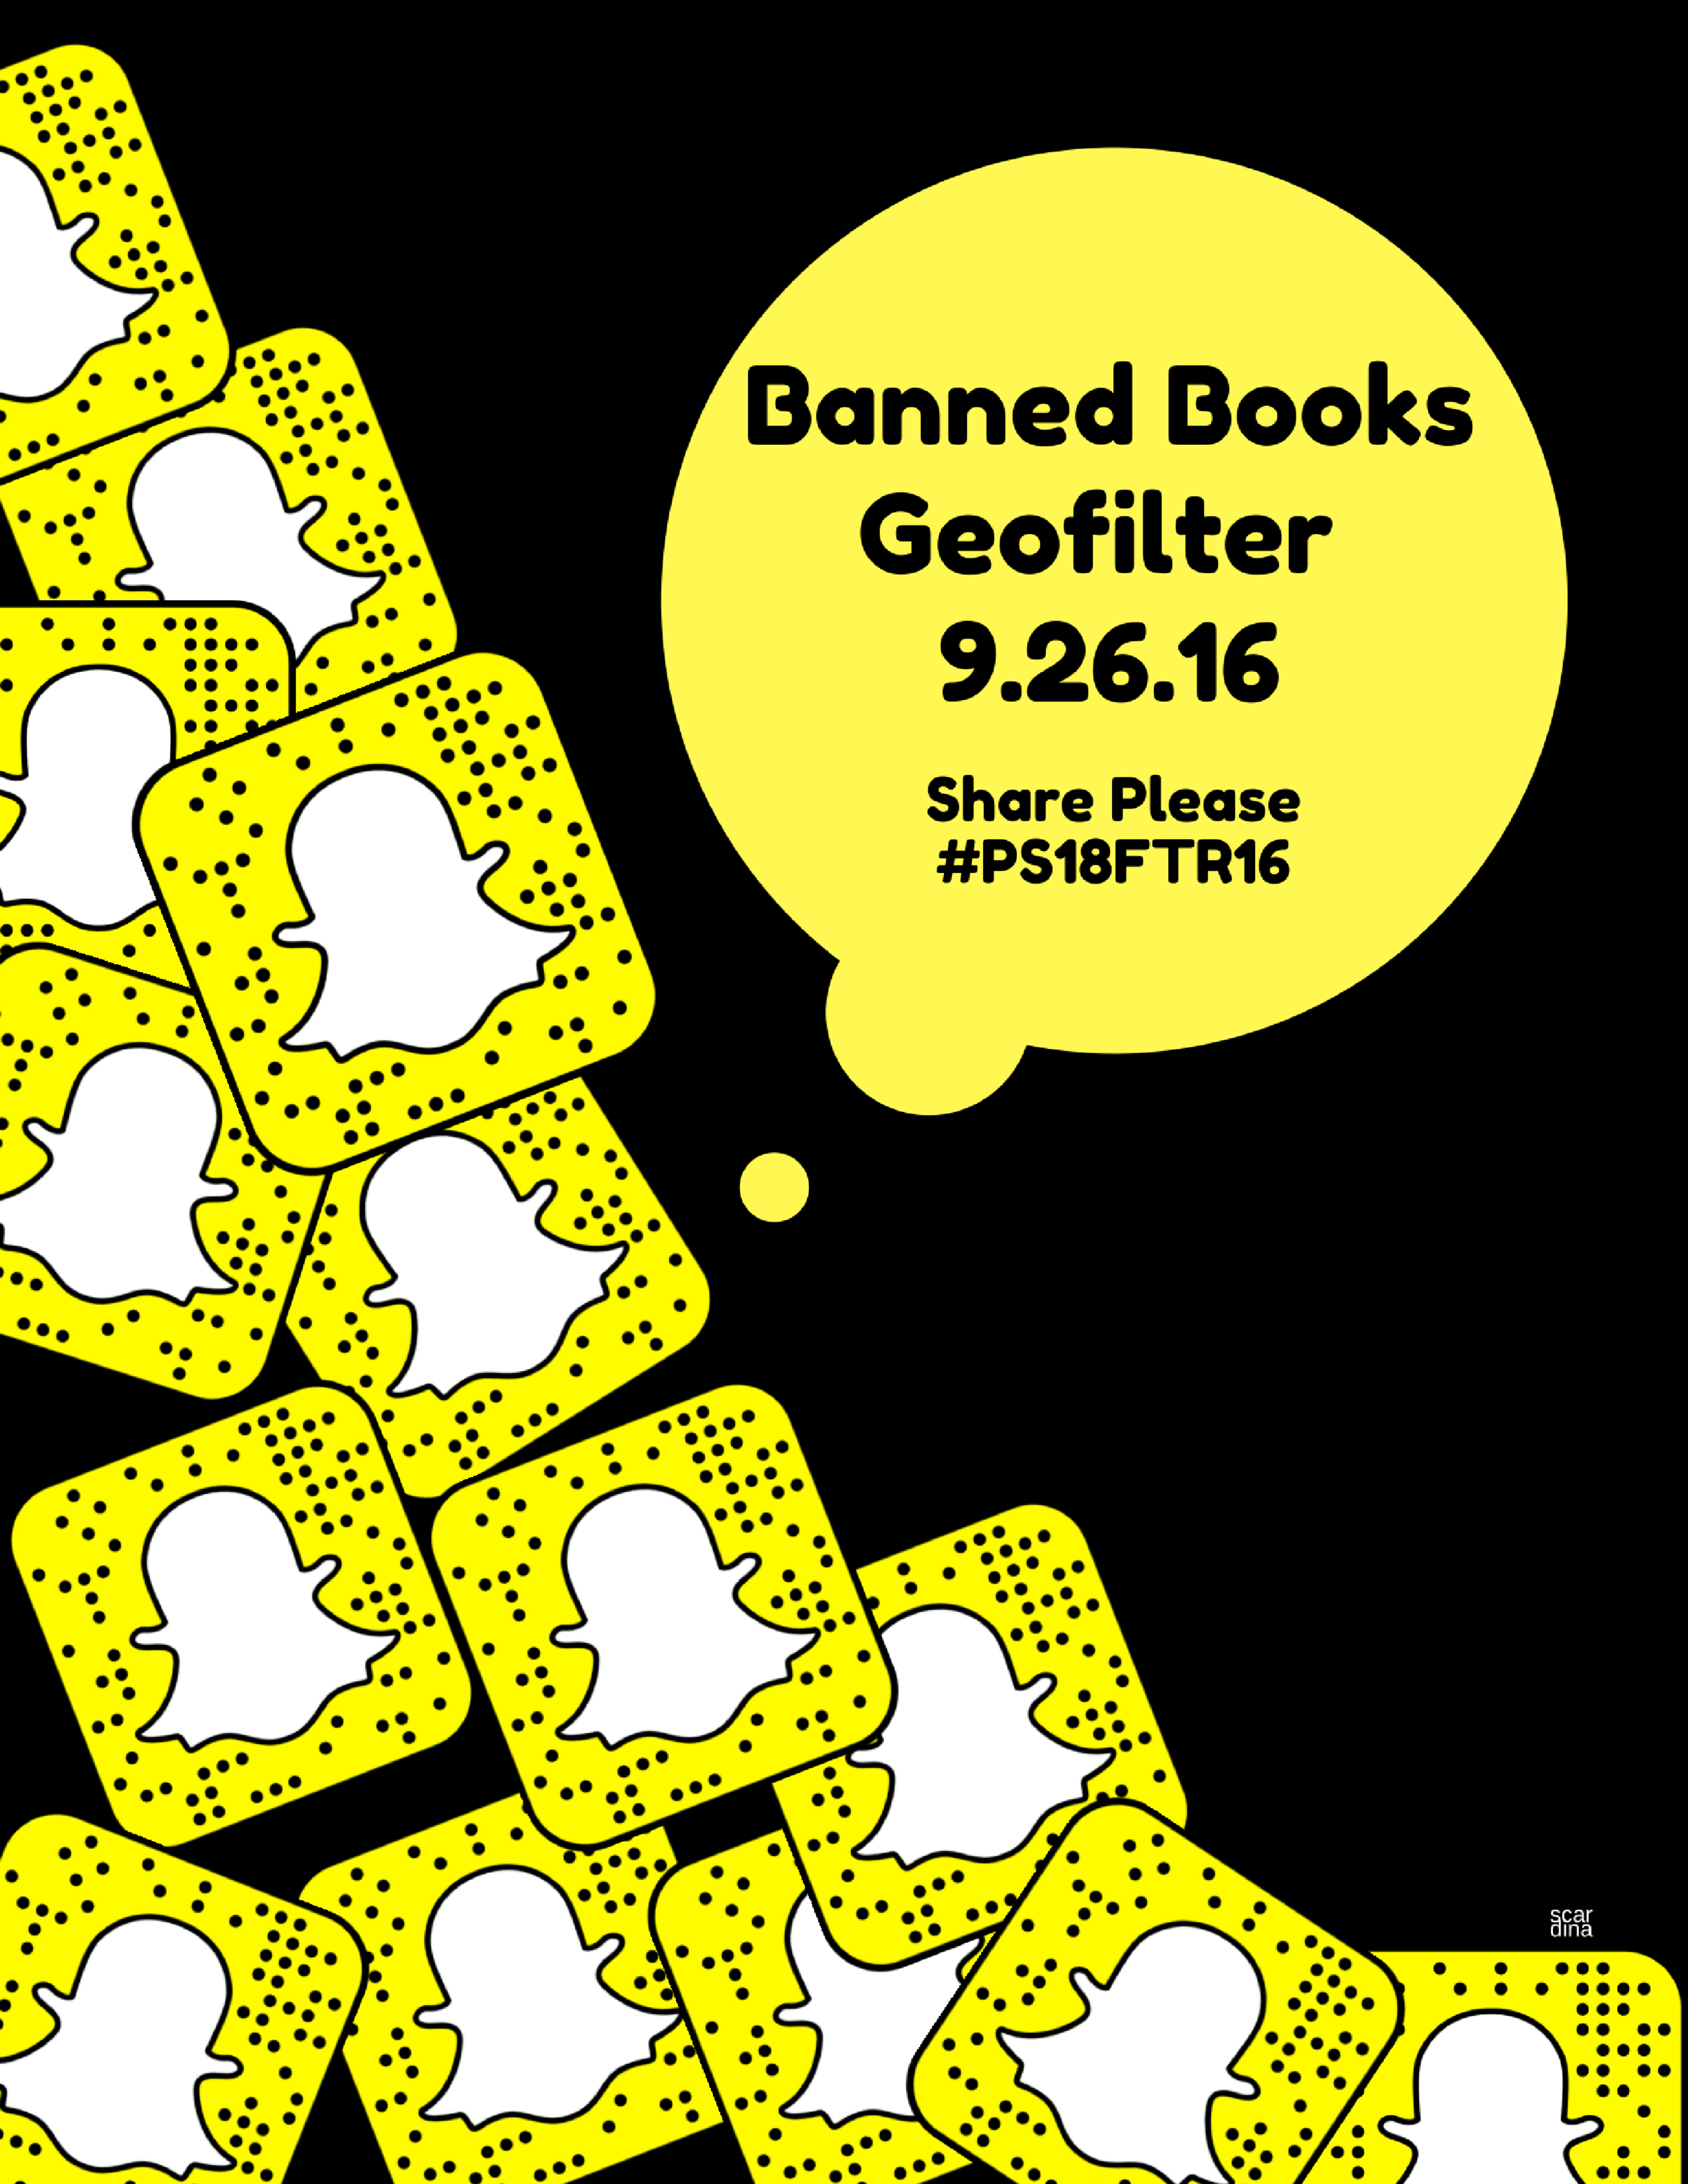 Geofilter Poster - I designed a Snapchat geofilter (see pic below) that ran for the entire first day of Banned Books Week. This is the ghost code for the library's Snapchat account.